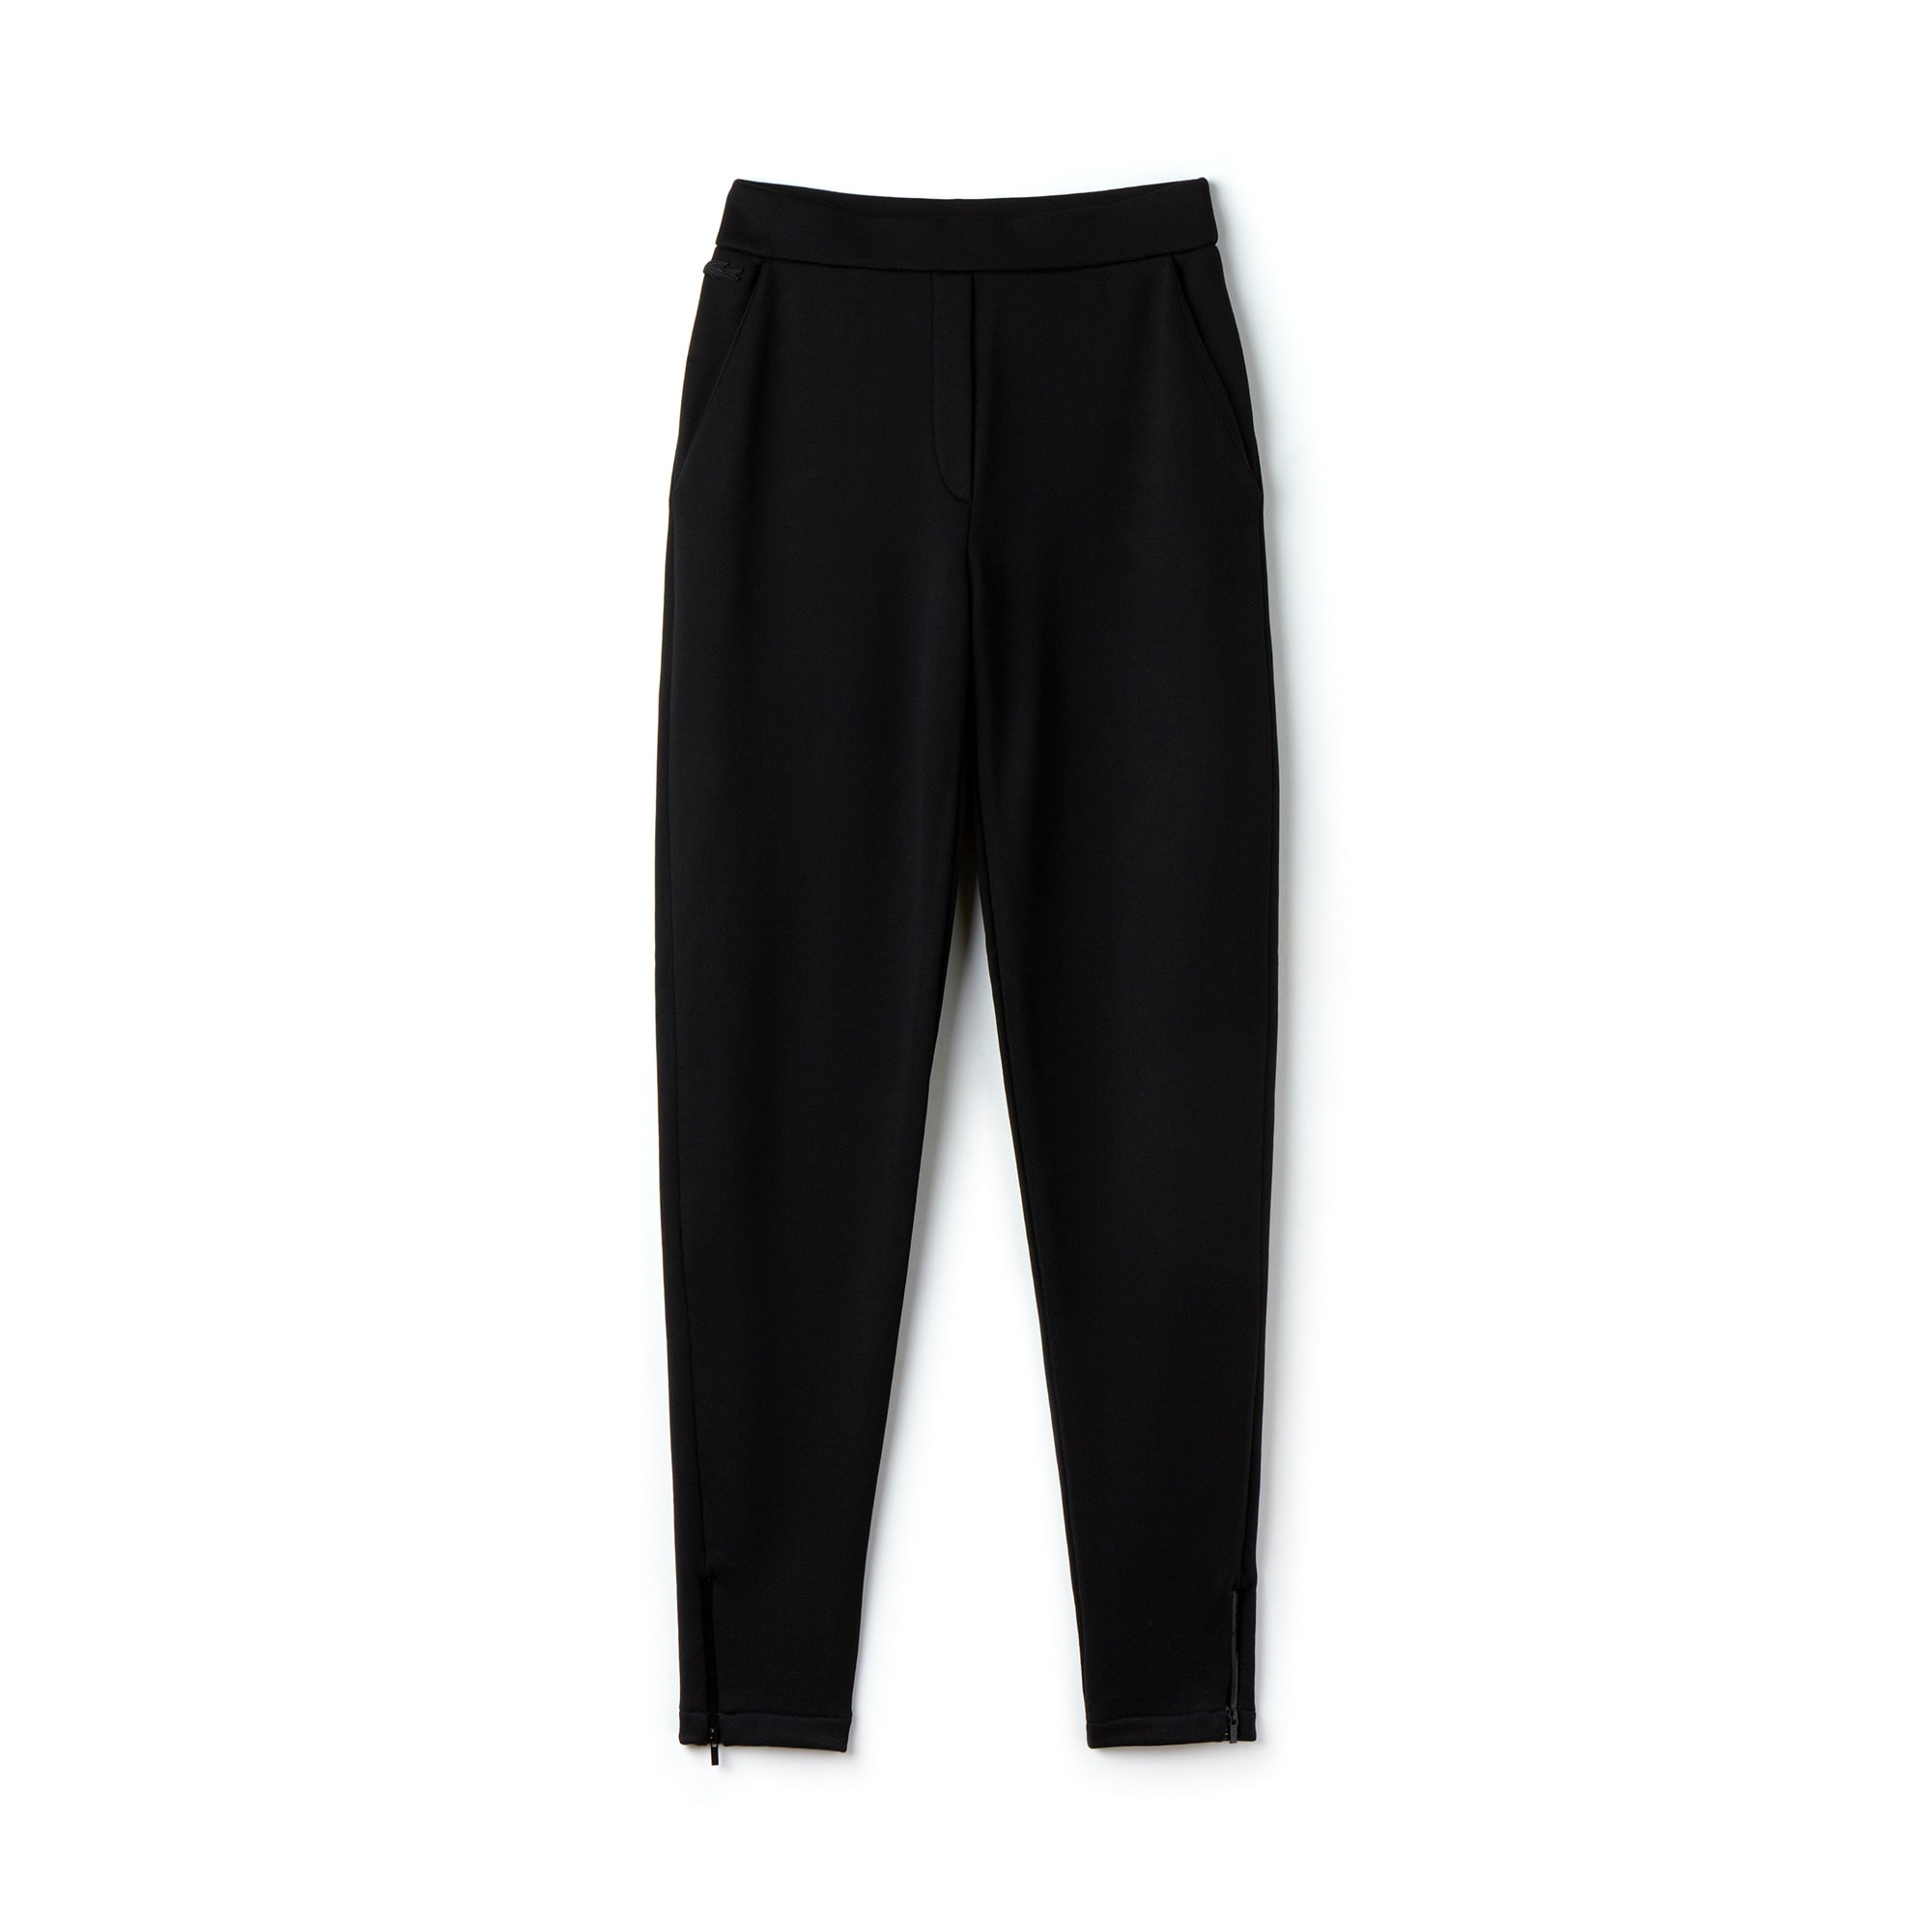 Women's Fleece Zippered Leg Bottom Jogging Pants